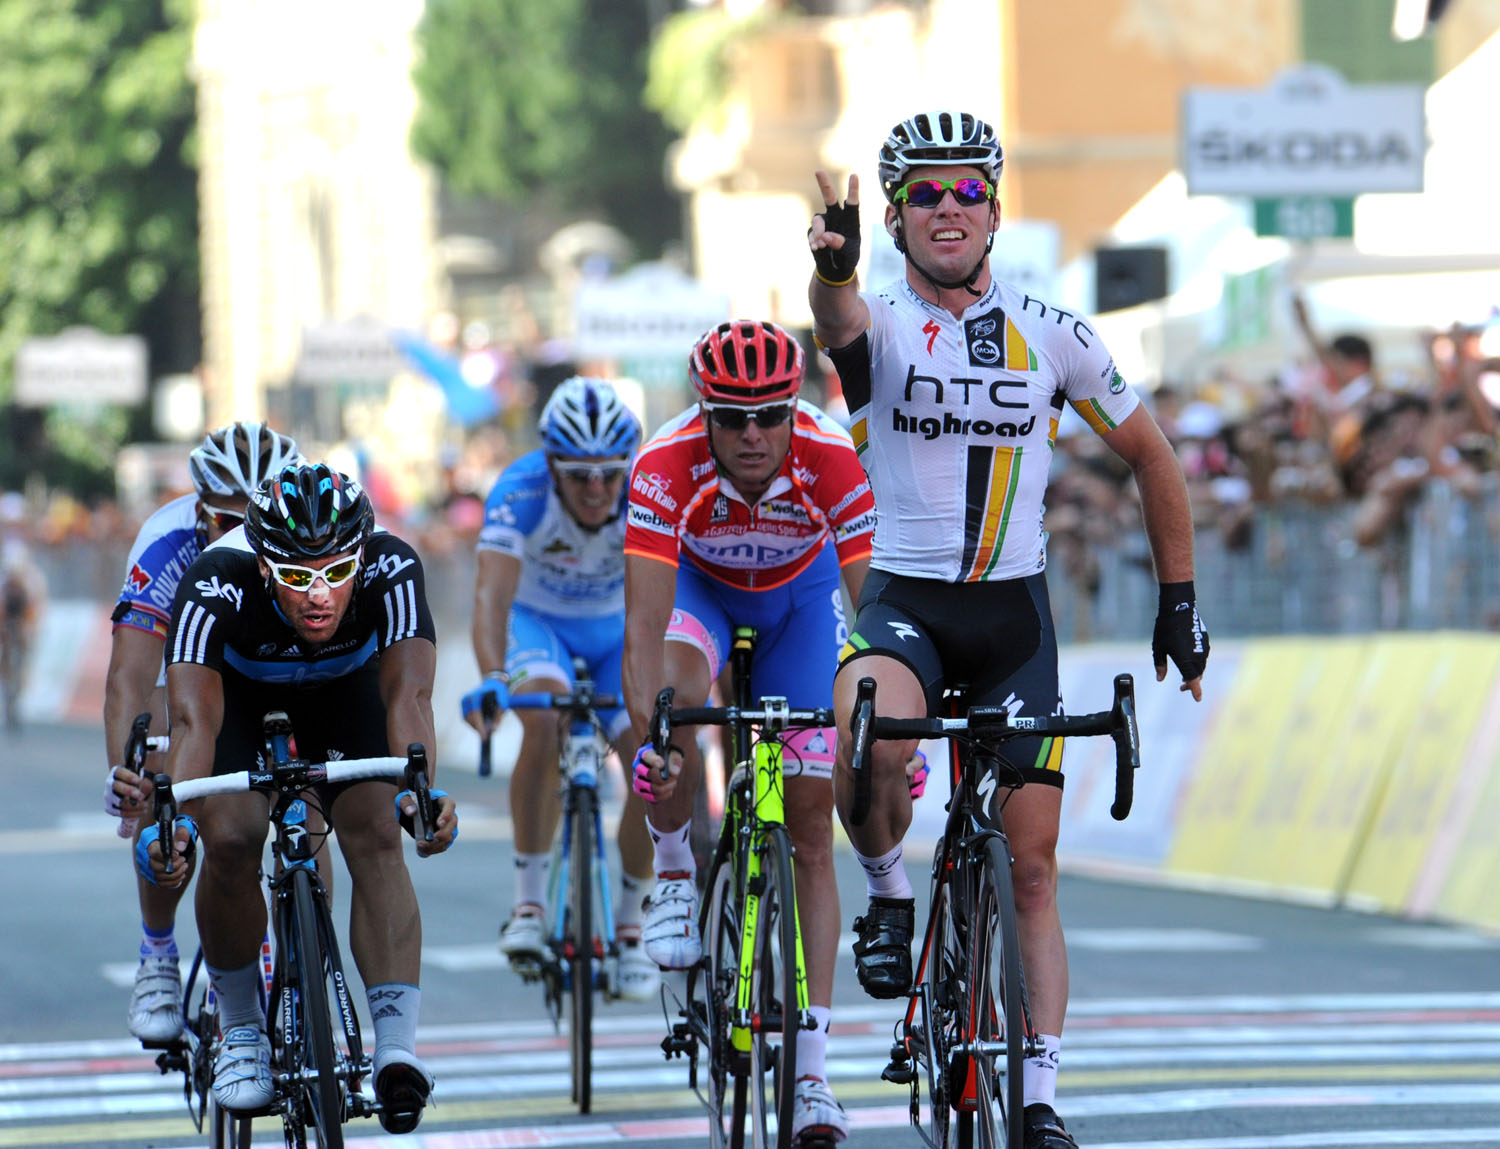 Mark Cavendish wins, Giro d